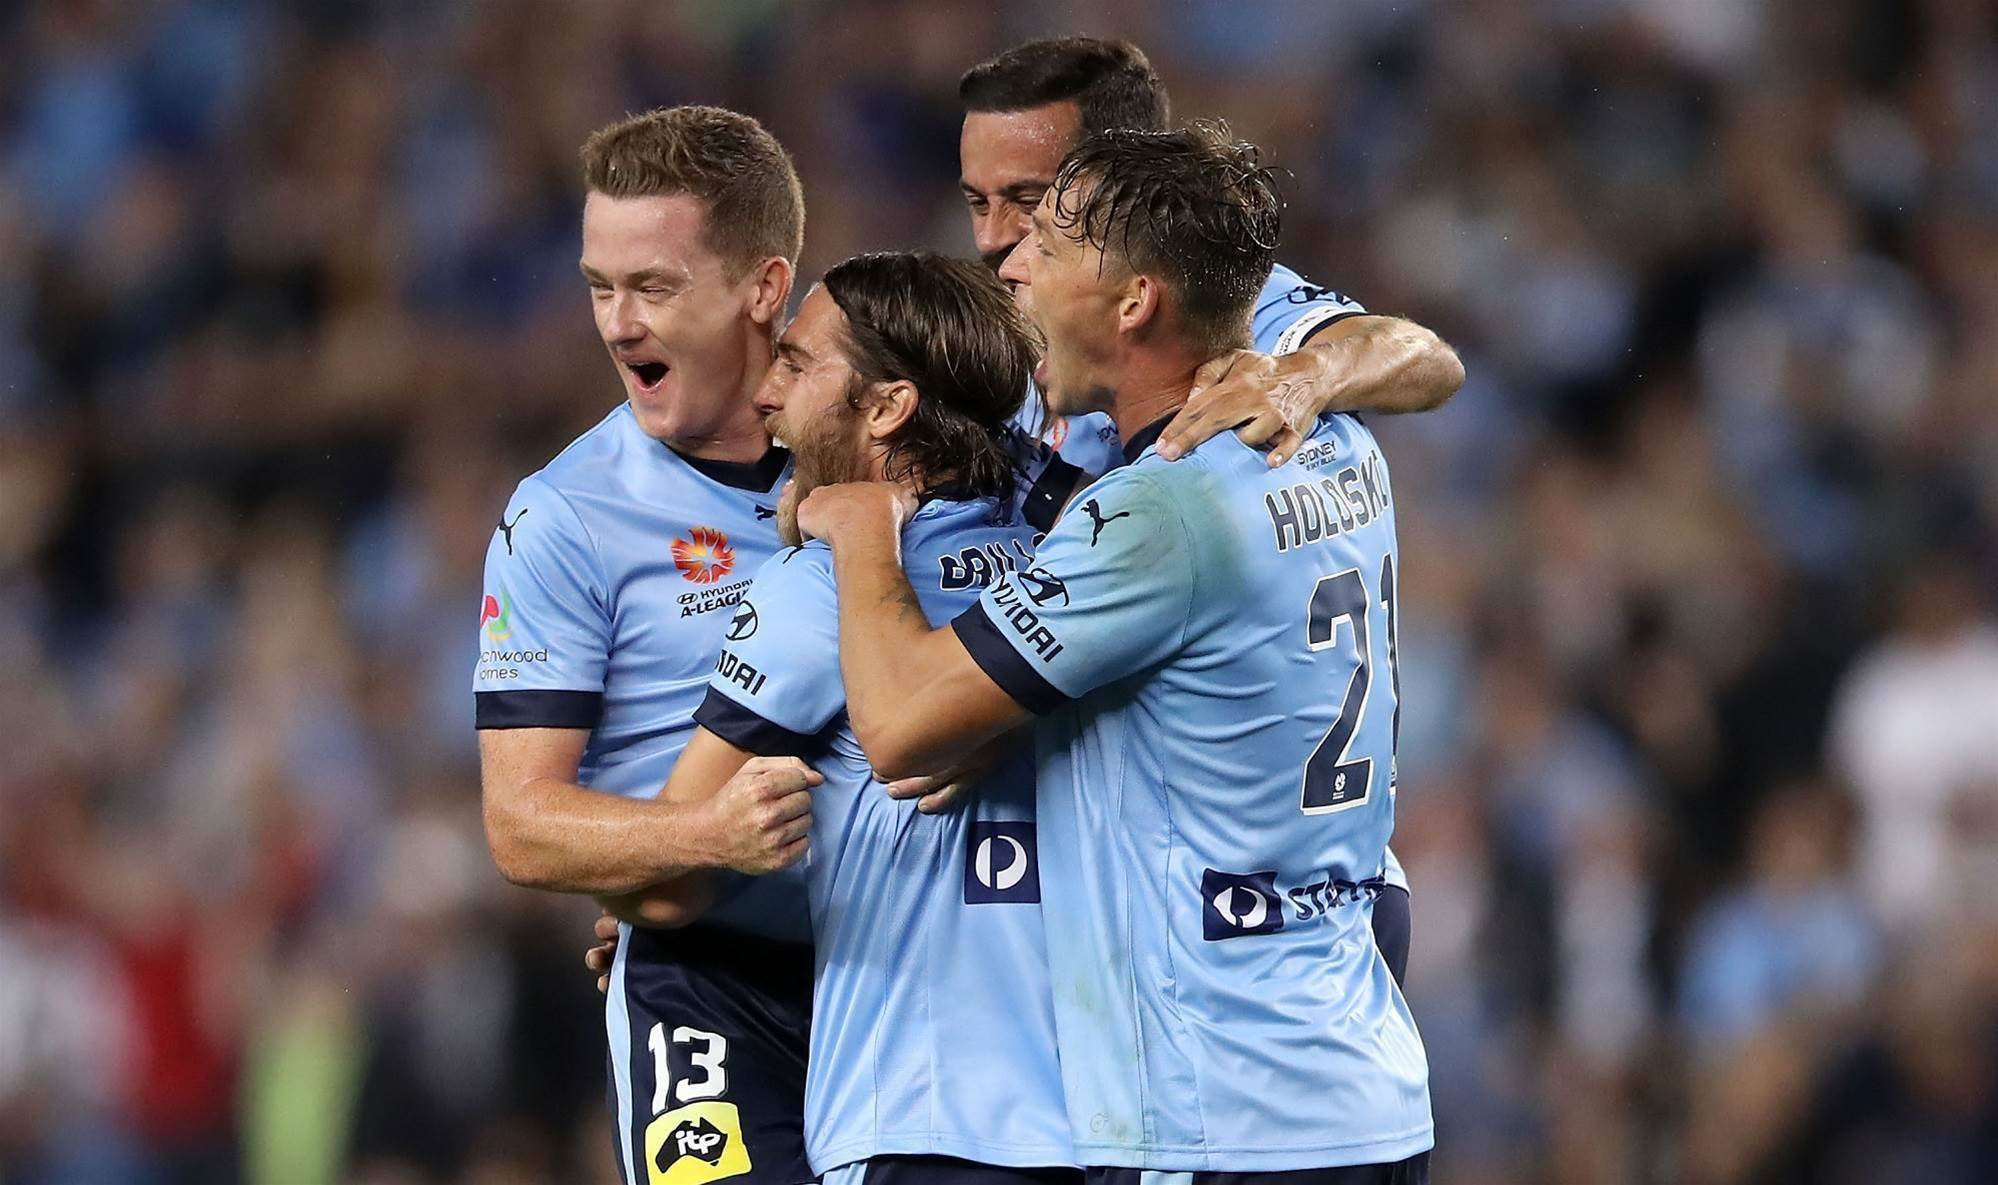 Sydney crush Glory to clinch home final